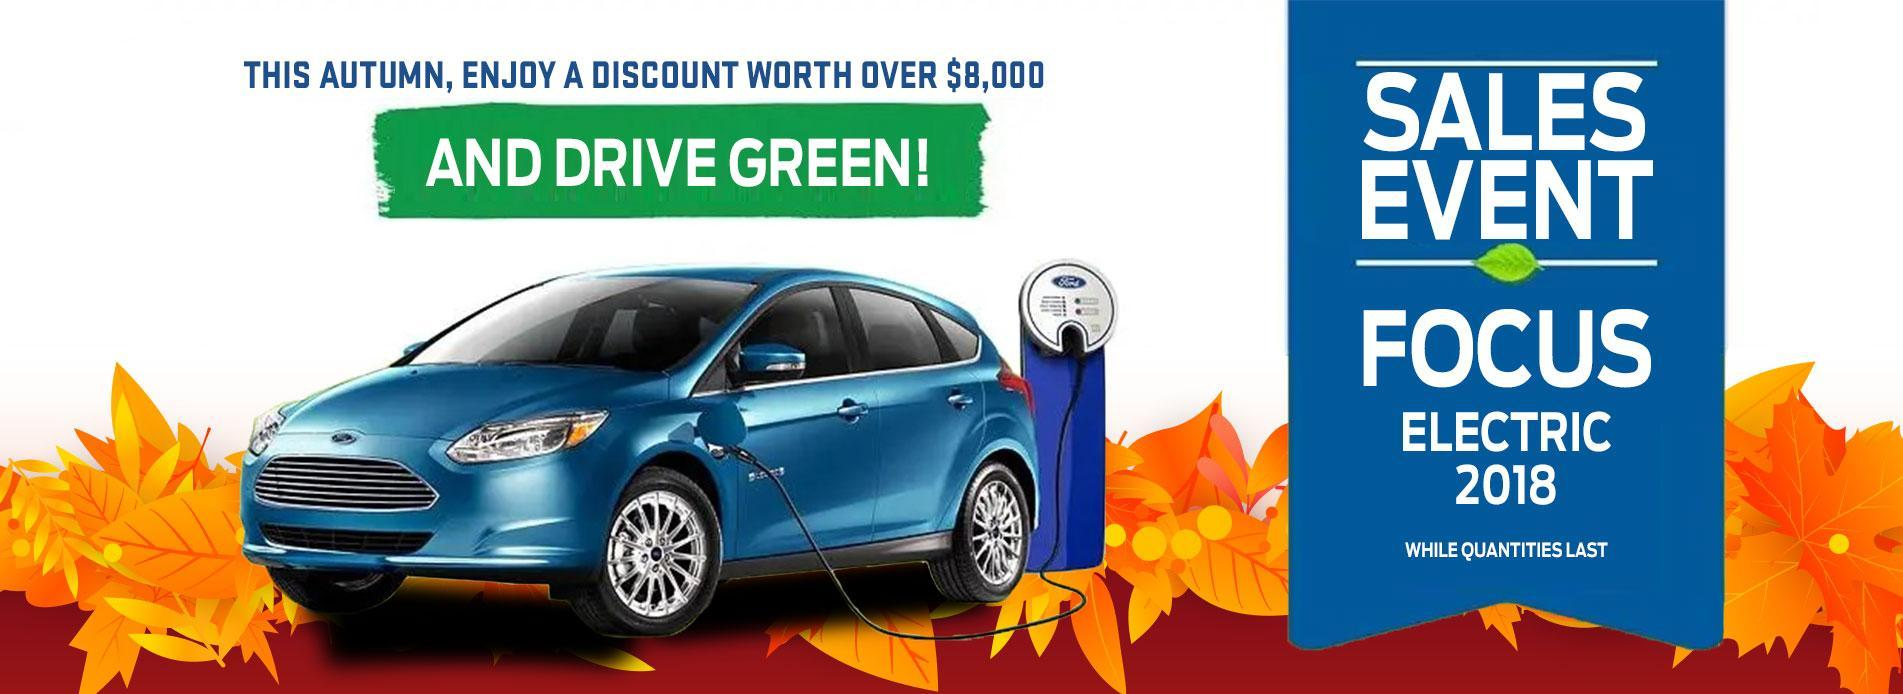 2018 Sales Event Focus Electric